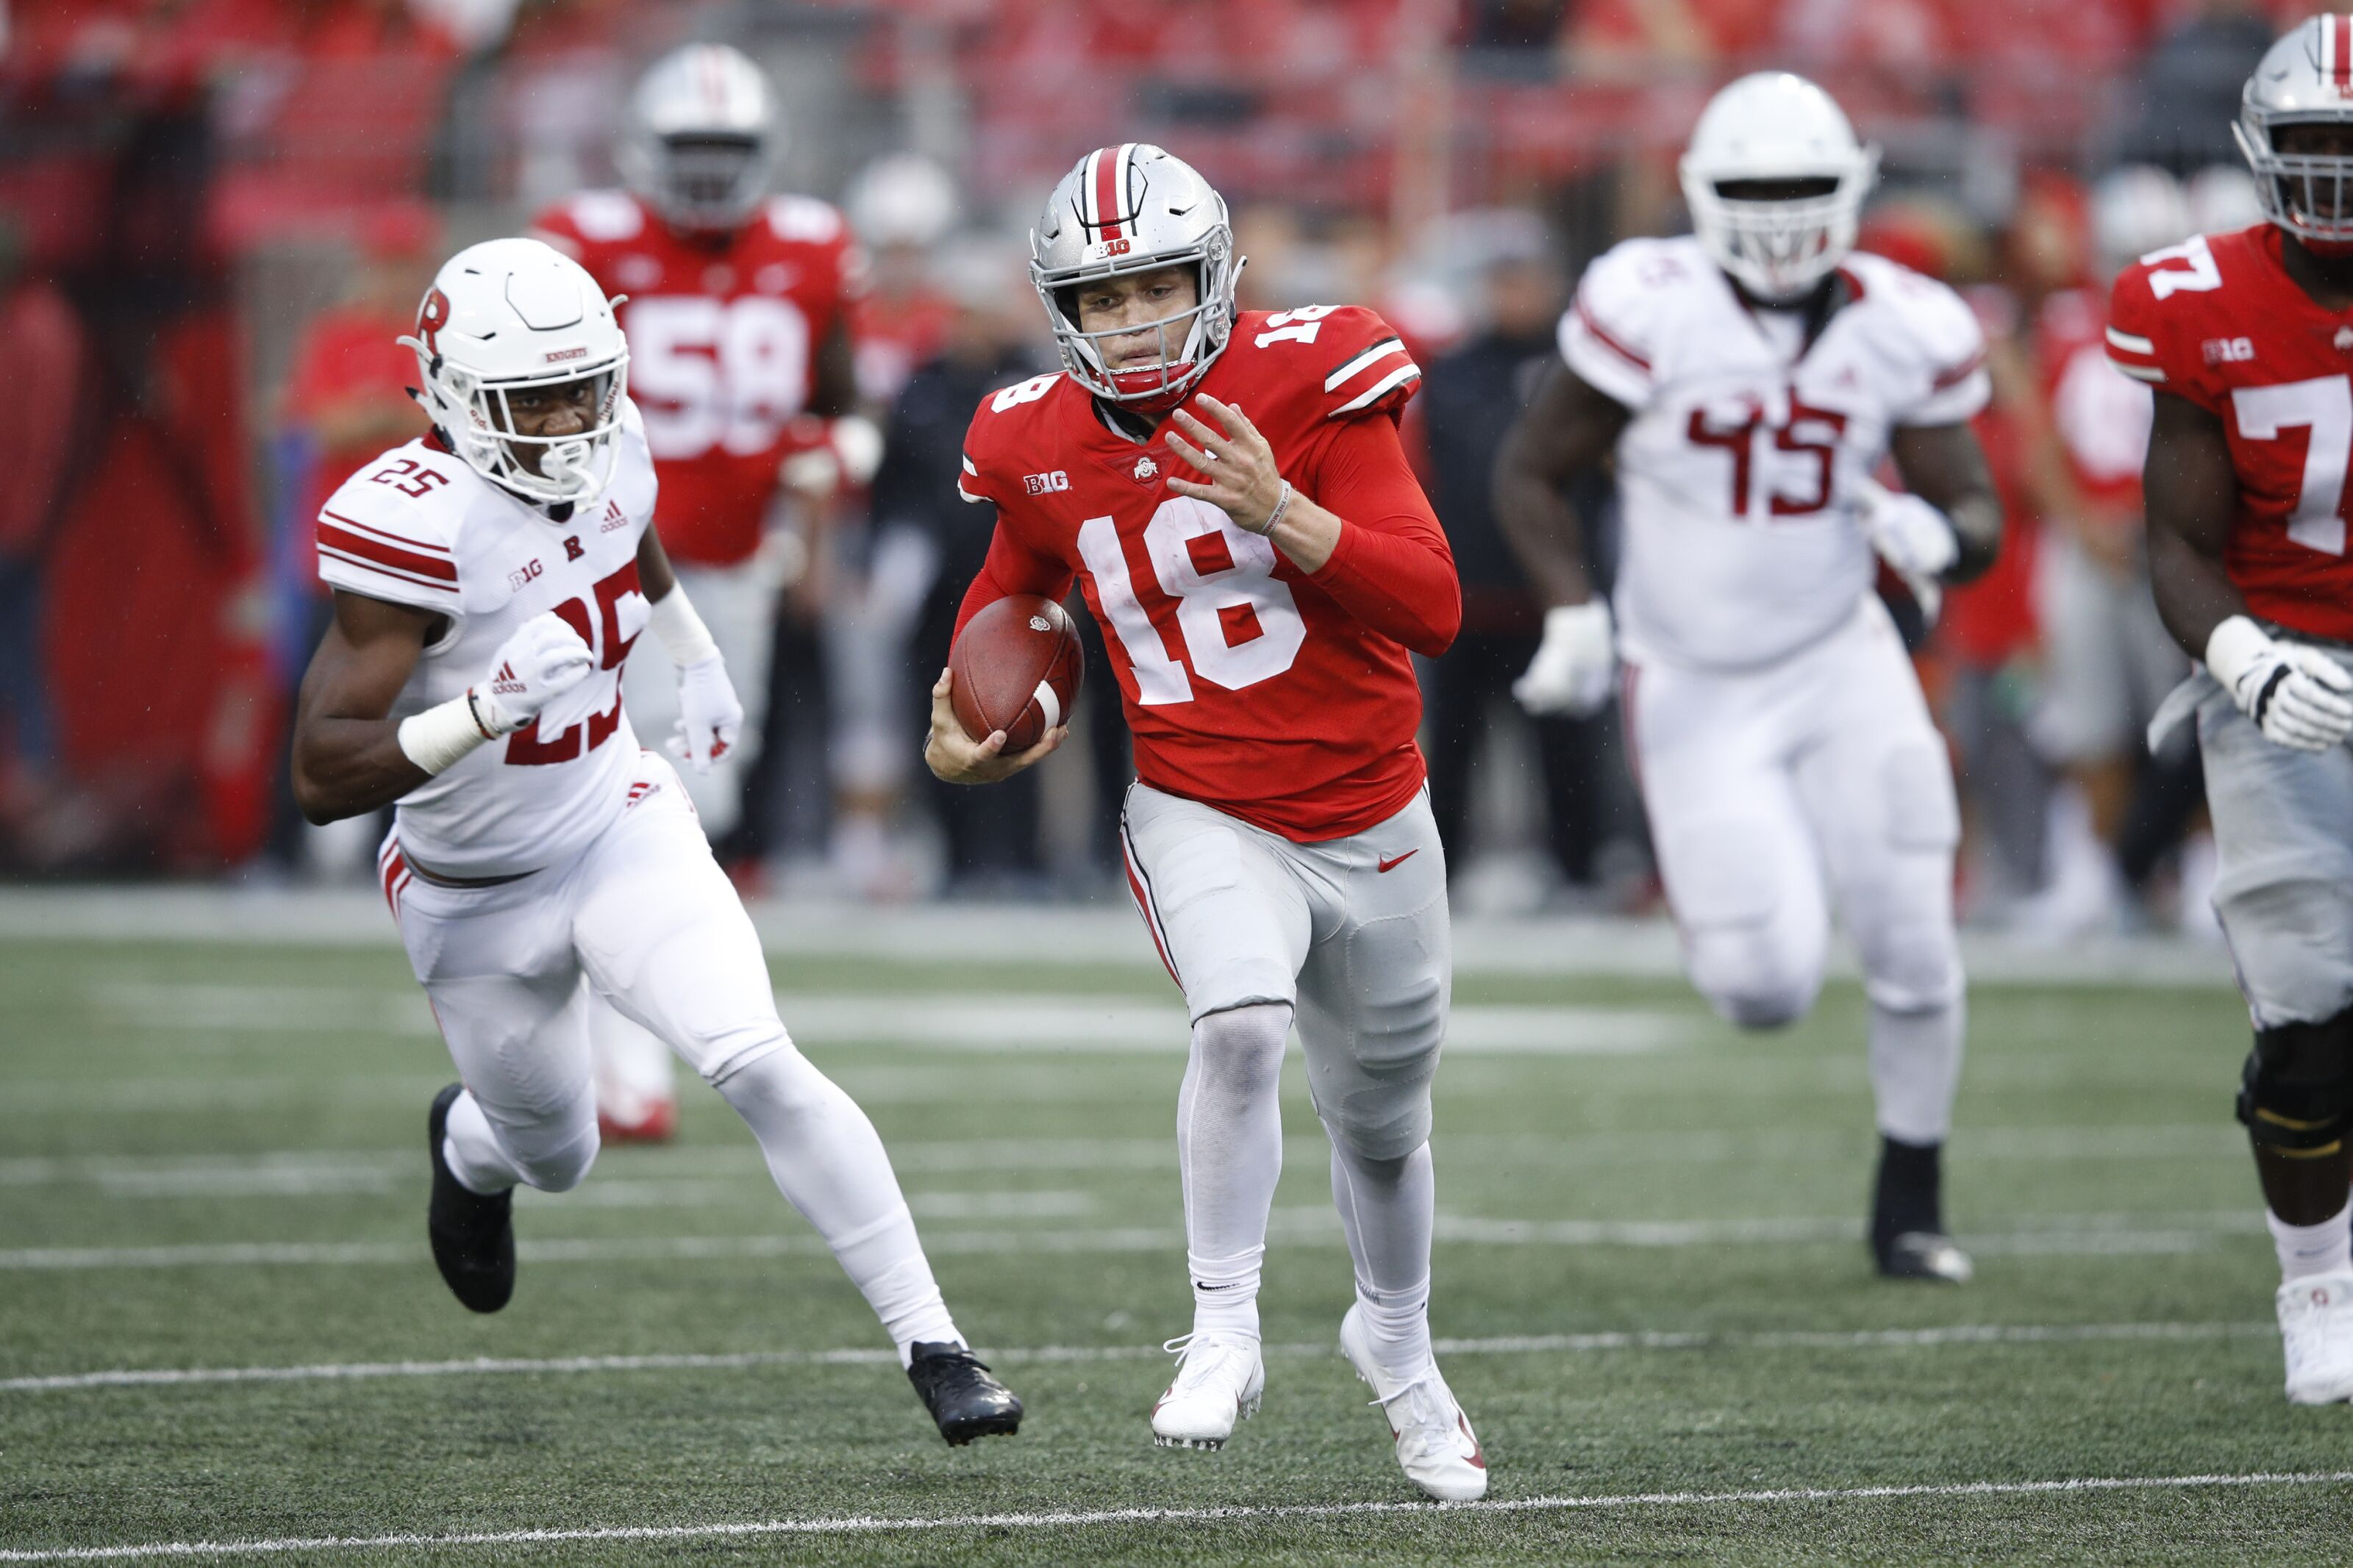 Ohio State Football A Closer Look At Quarterback Tate Martell